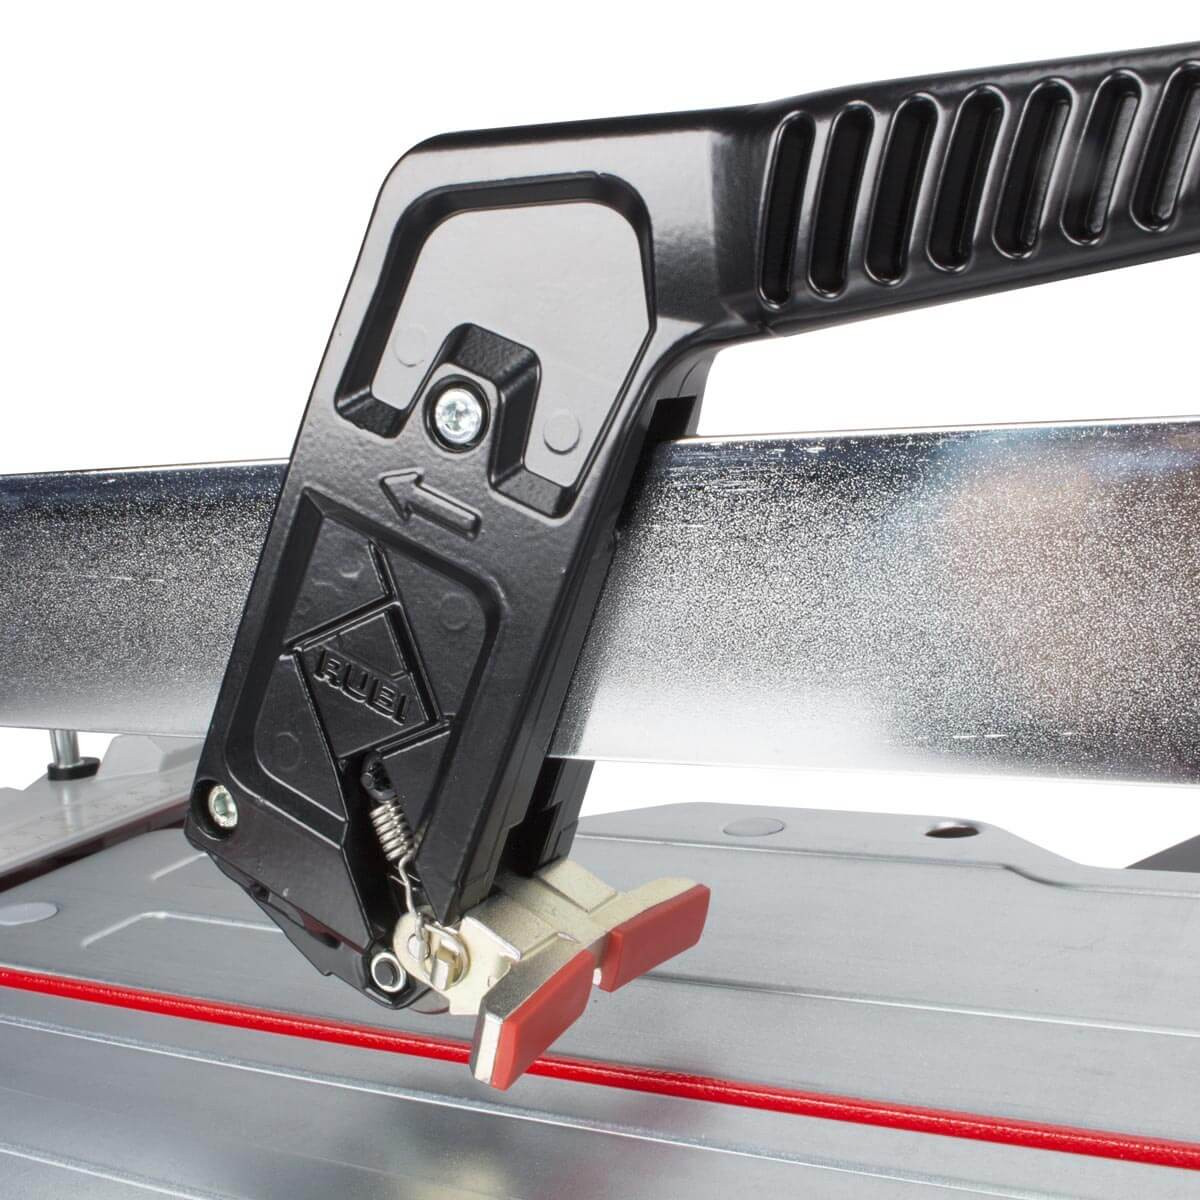 Rubi TP-S Tile Cutter top view